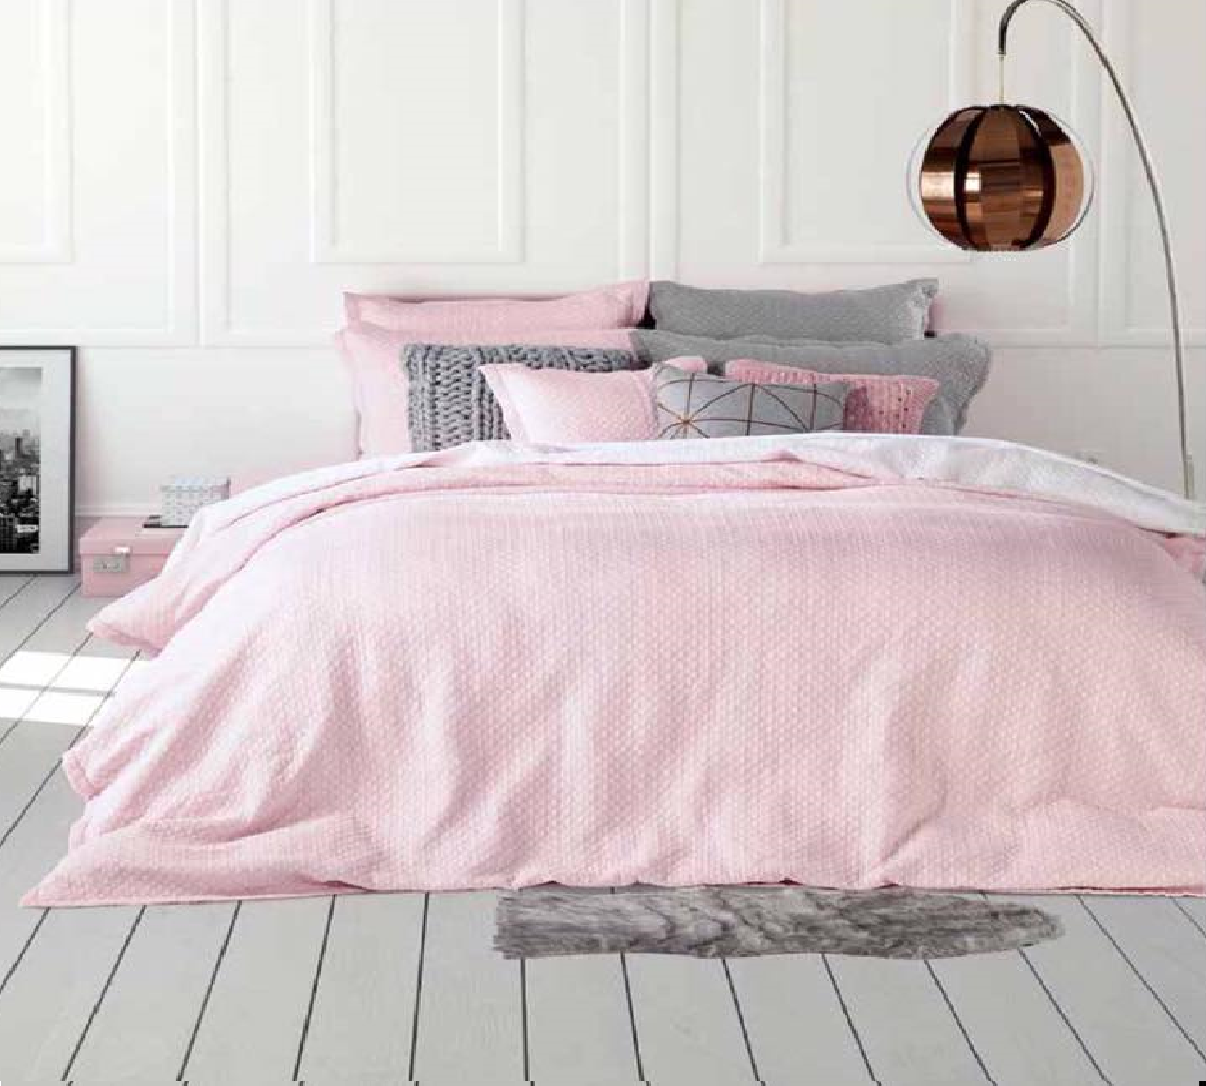 on adore la nouvelel housse de couette chanel en blanc rose ou gris p le housse de couette. Black Bedroom Furniture Sets. Home Design Ideas